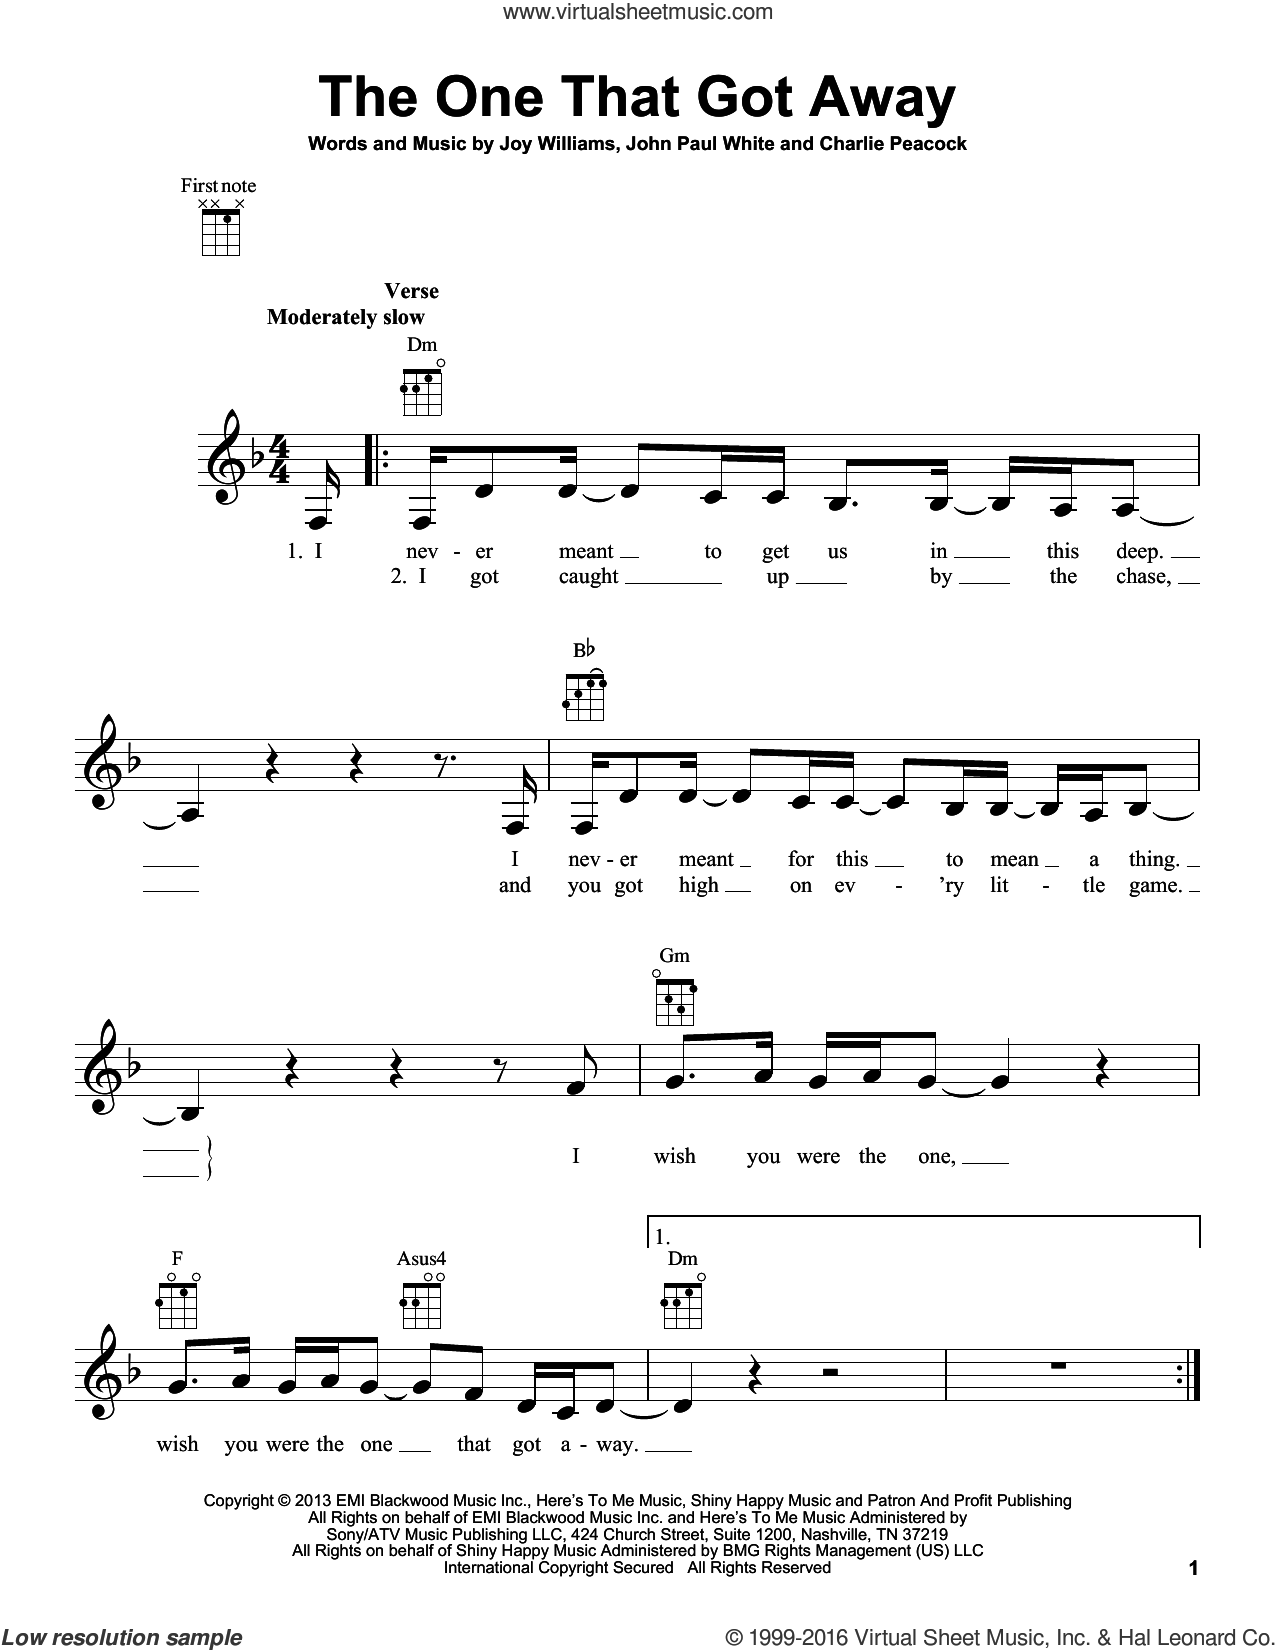 The One That Got Away sheet music for ukulele by Joy Williams, Charlie Peacock and John Paul White. Score Image Preview.